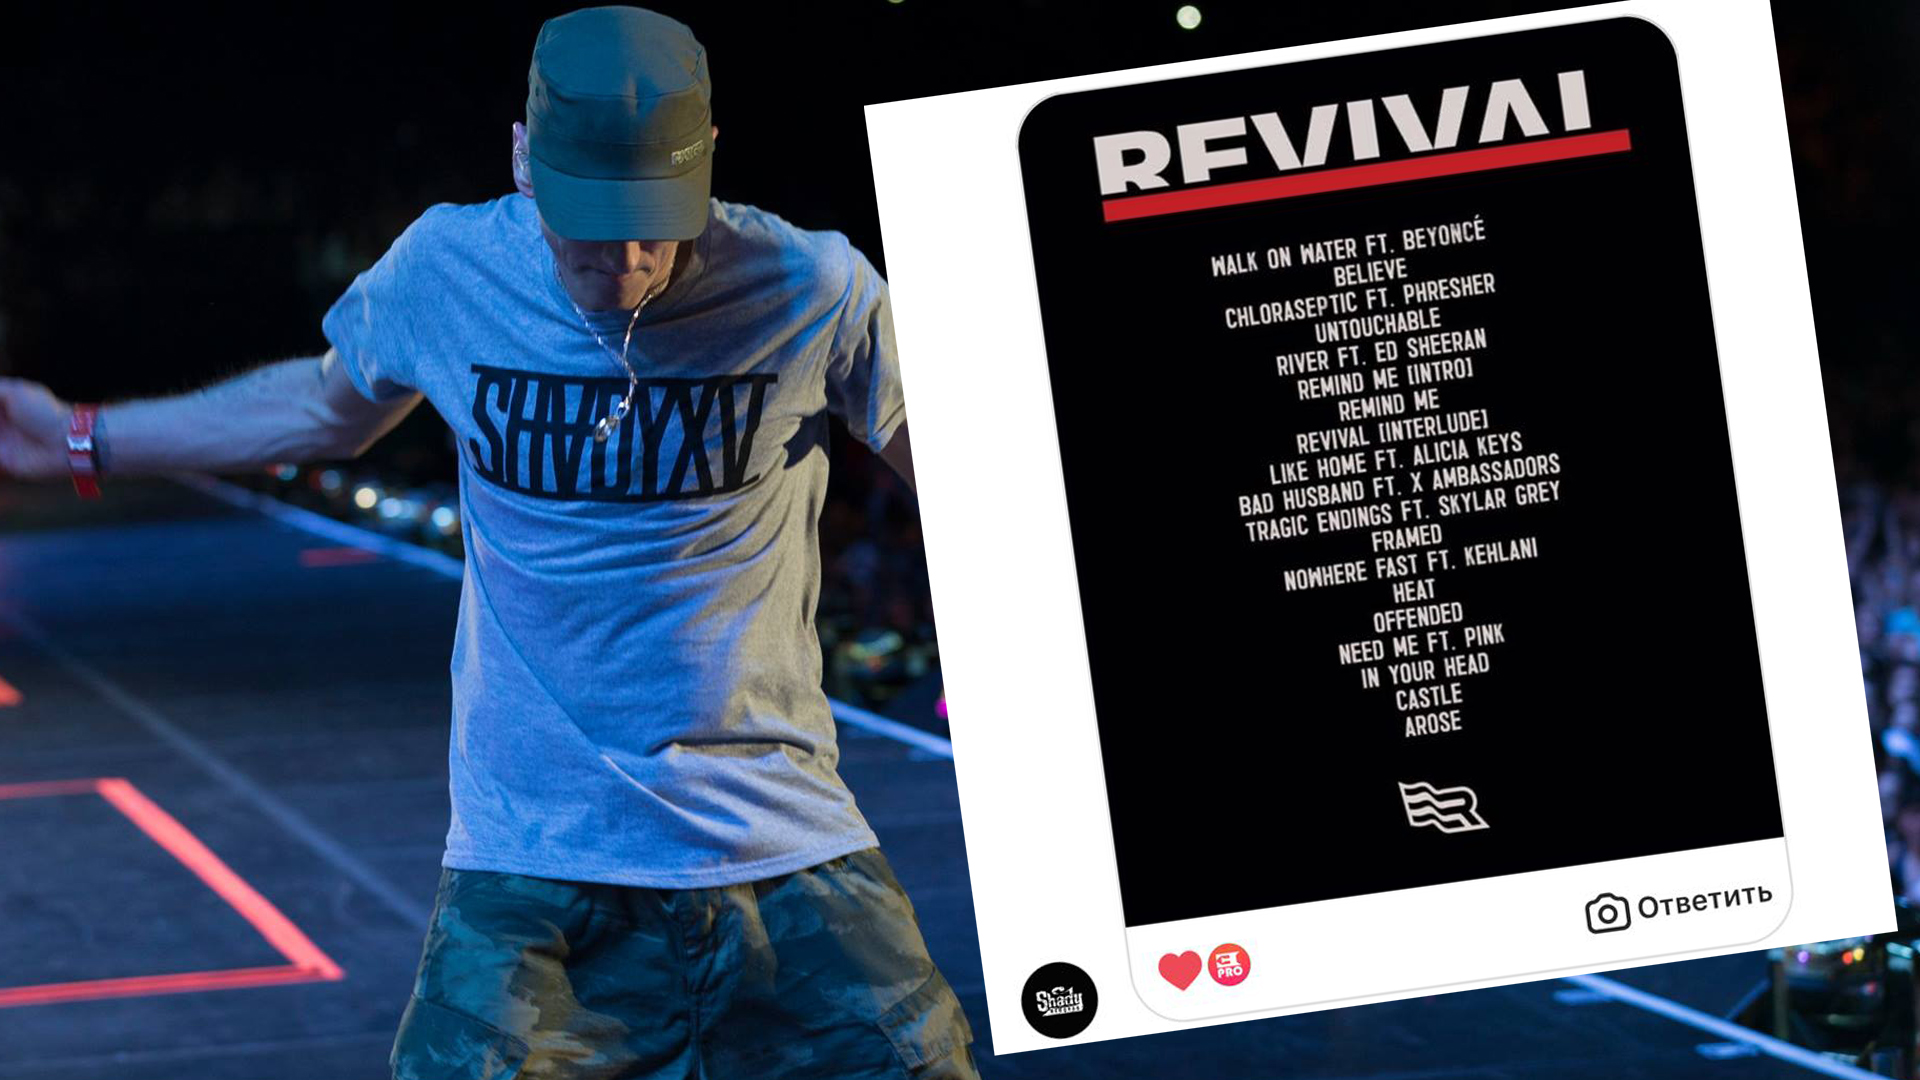 Eminem officially published the tracklist of his ninth studio album